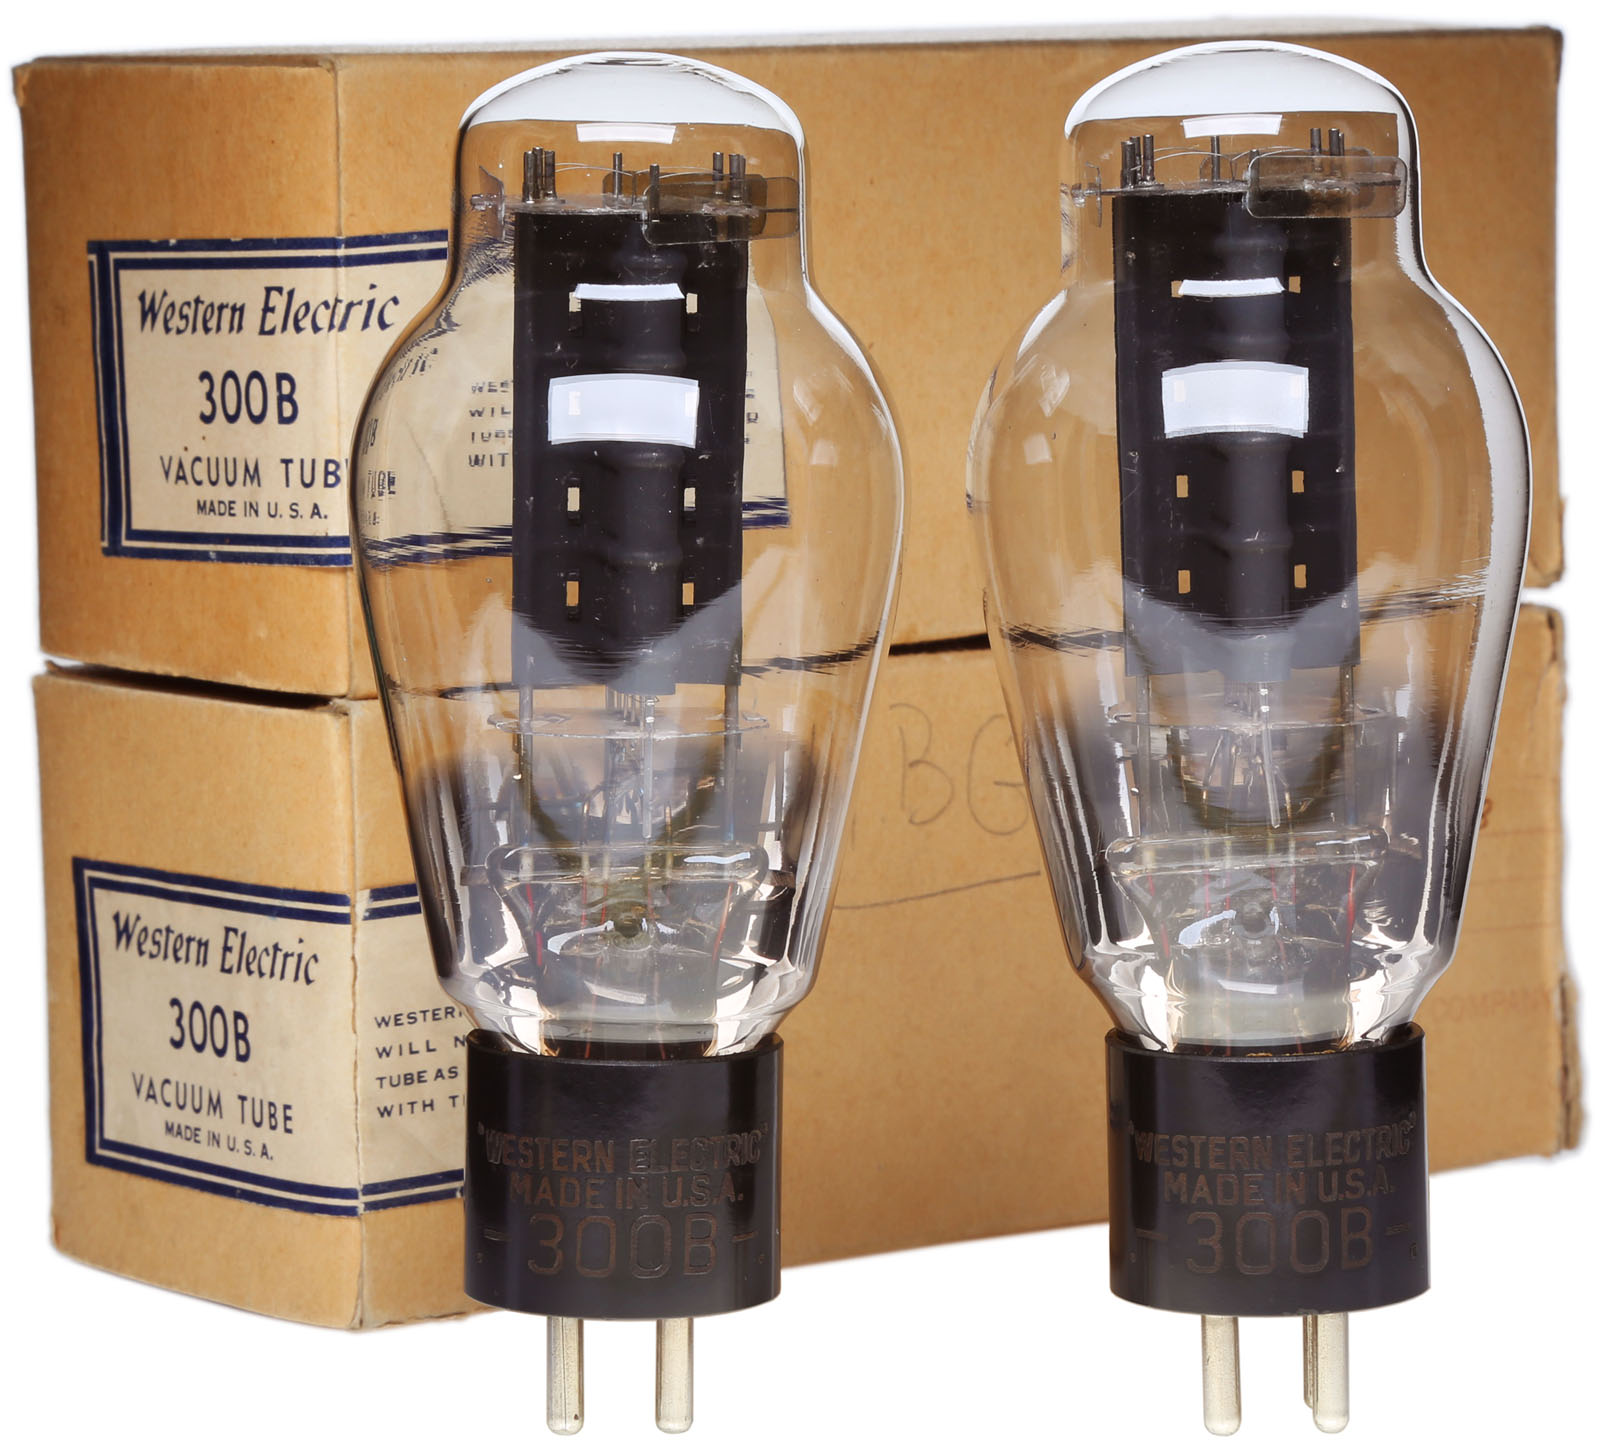 NOS Western Electric Engraved Base 300B, Black Plate, Late 1930's, Matched Pair